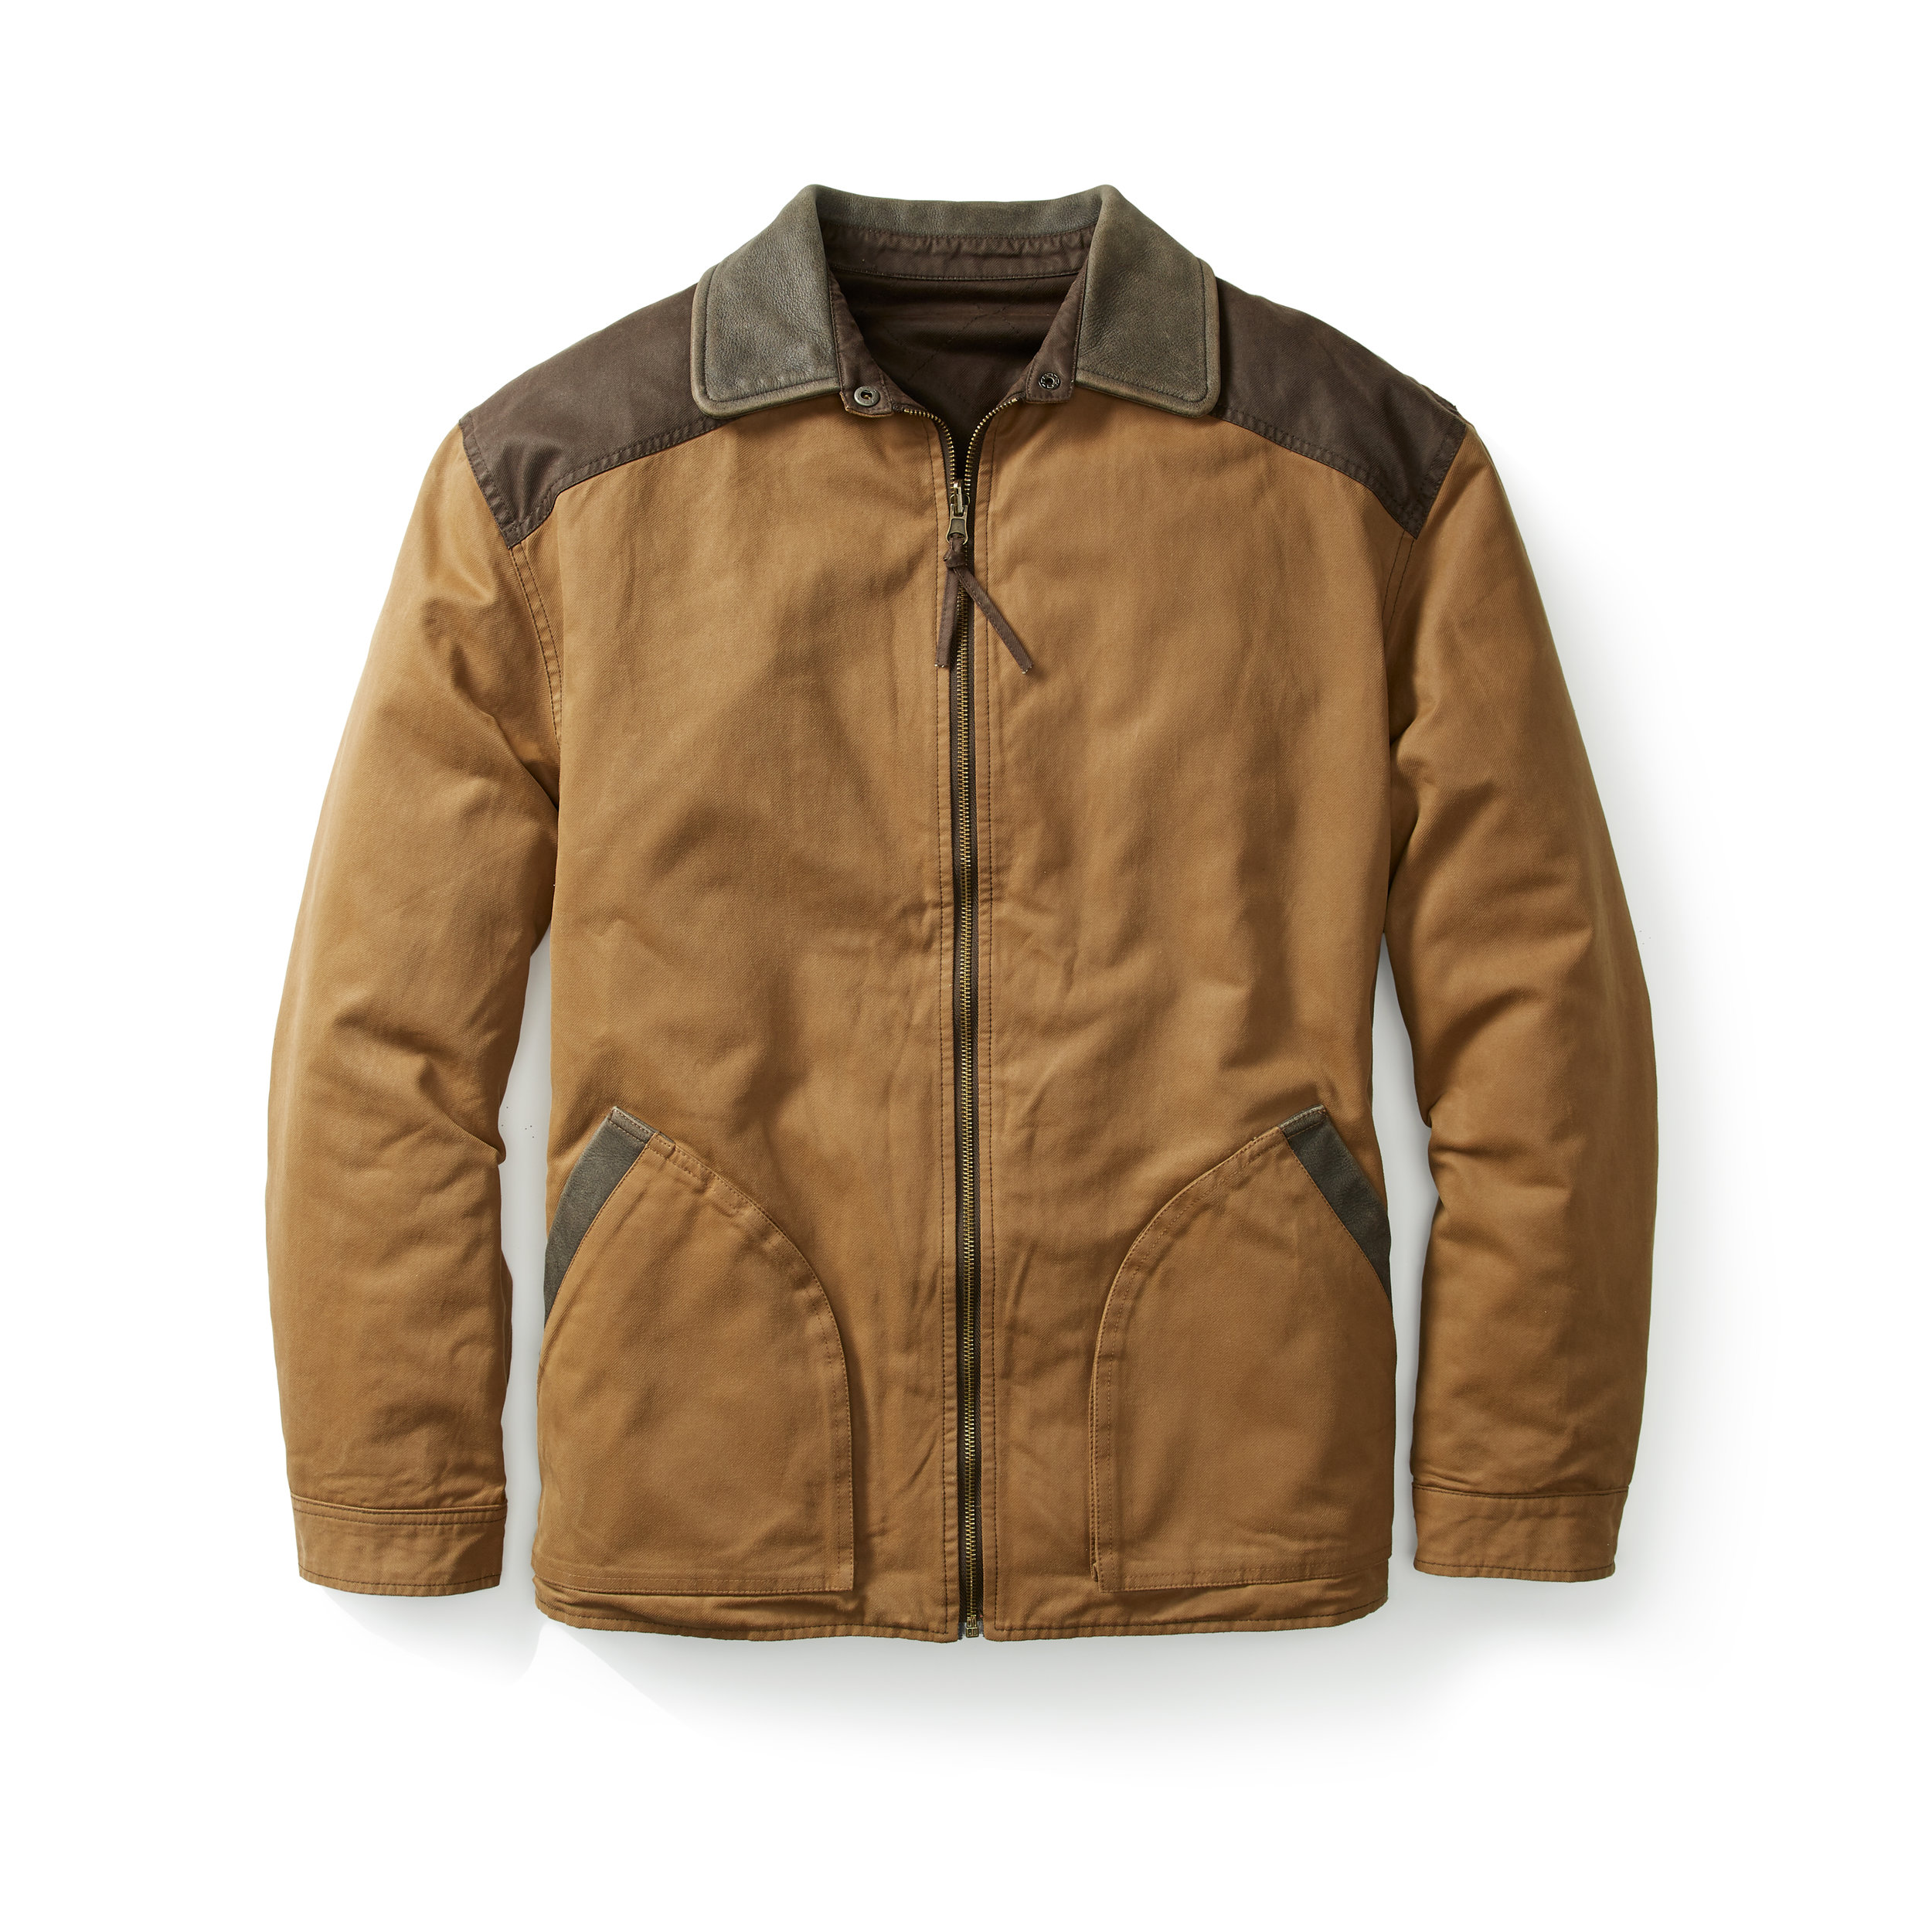 KR_FieldJacket_Reversible_Timber_124.jpg